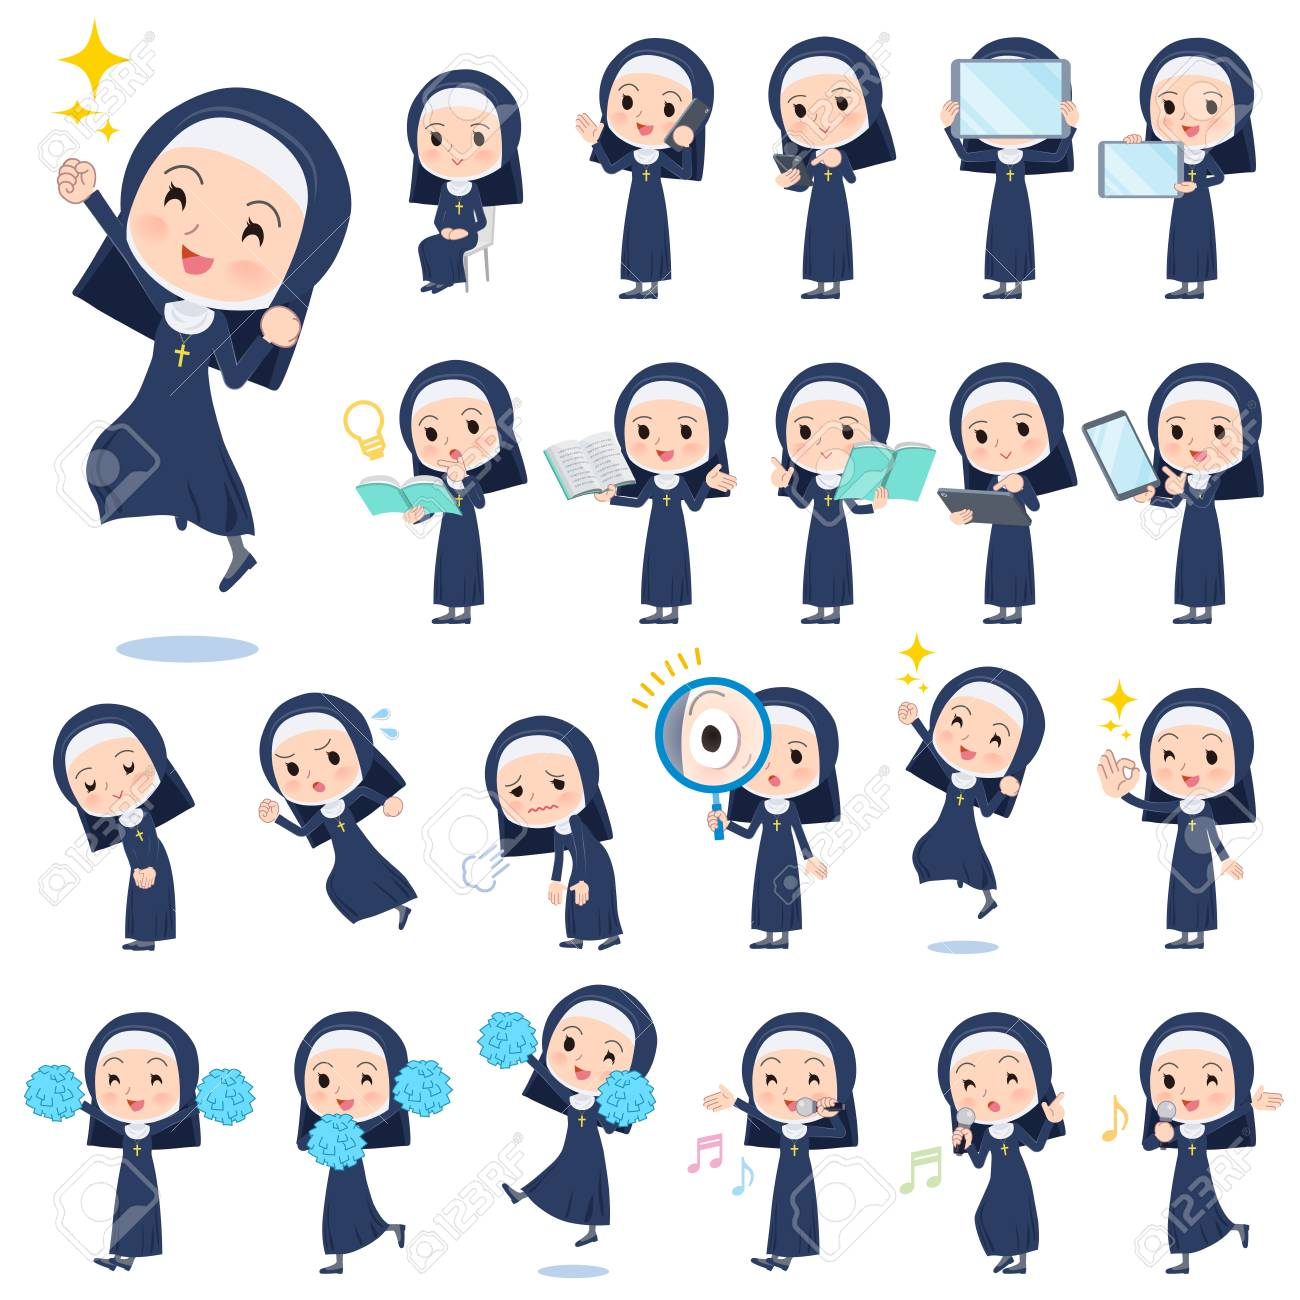 A set of Nun women with digital equipment such as smartphones.There are actions that express emotions.It's vector art so it's easy to edit. - 112646927